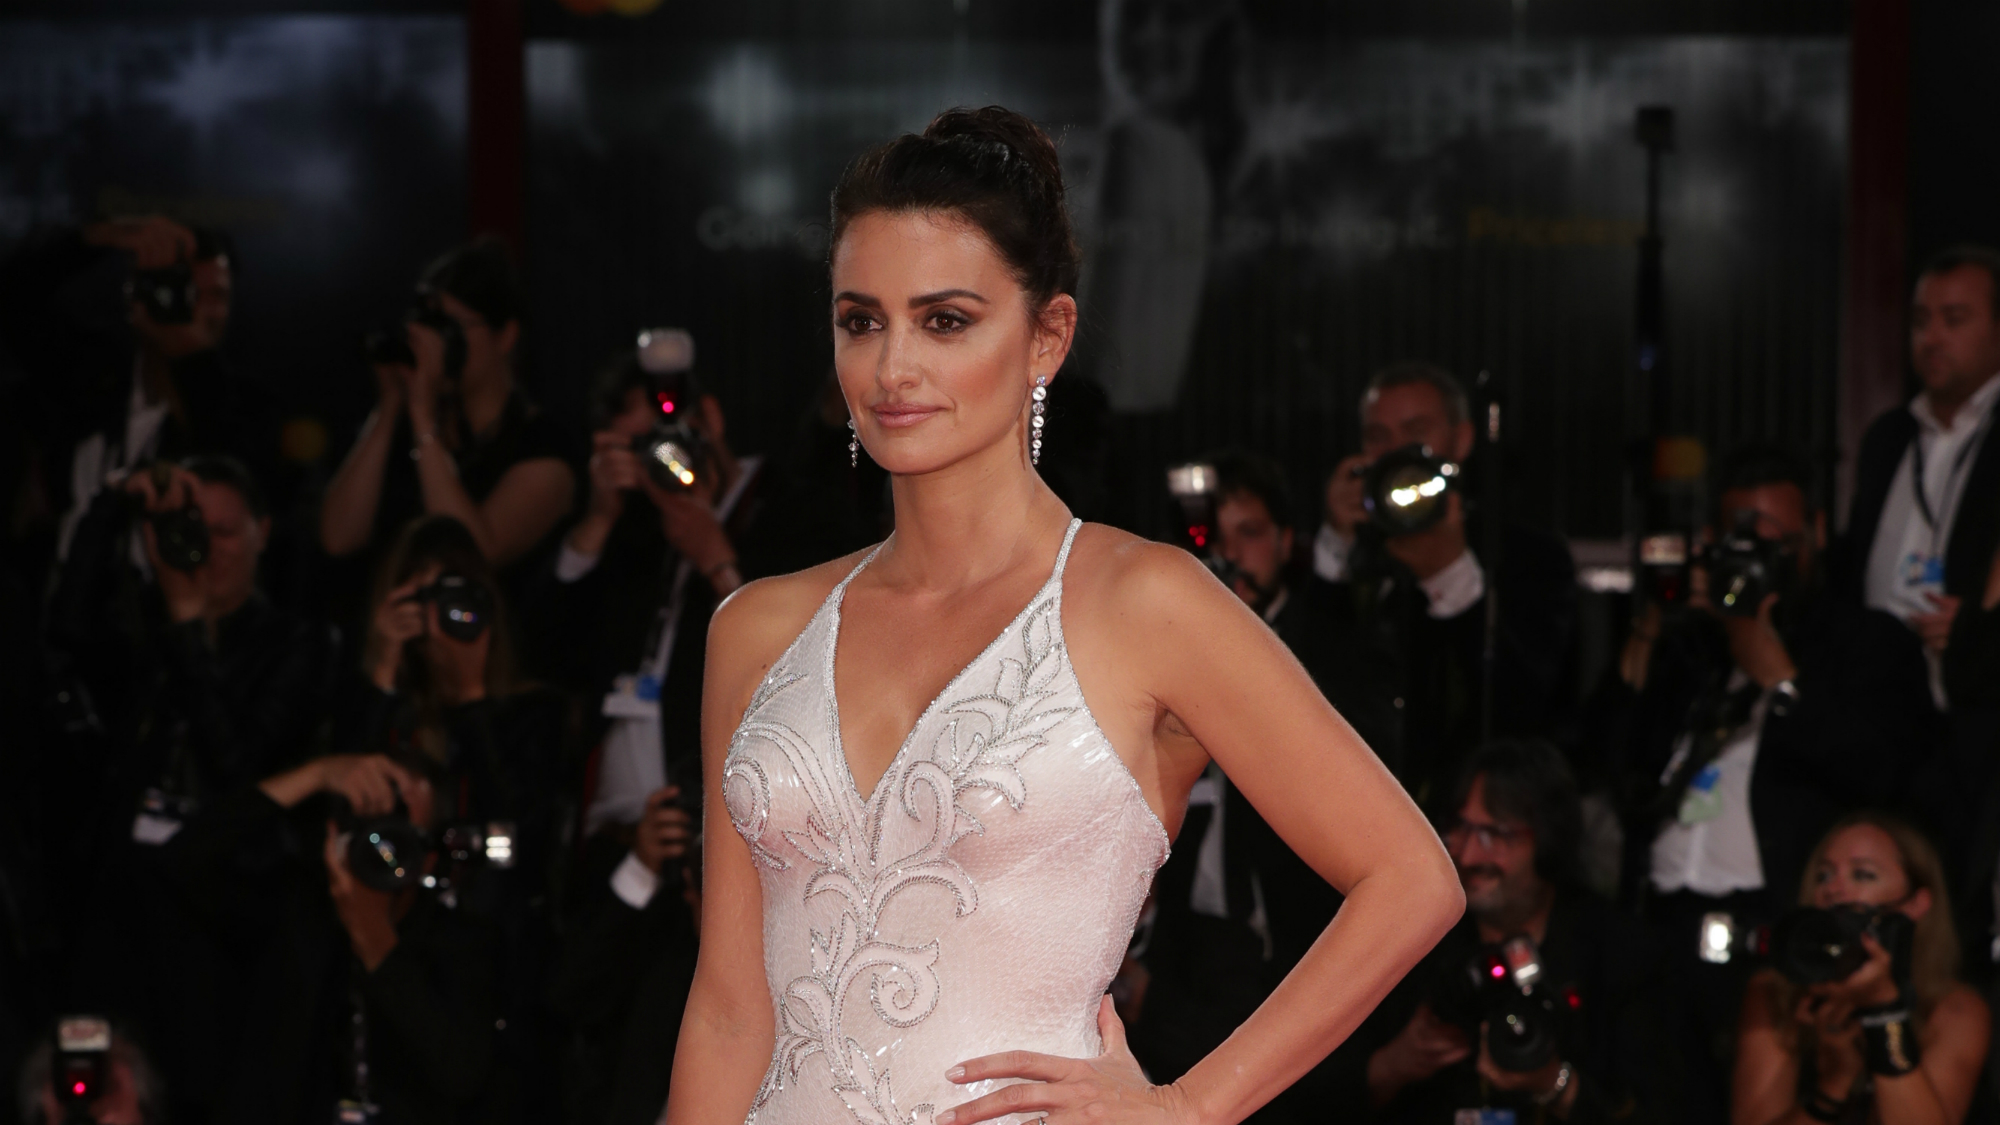 Penelope Cruz seriously put this interviewer in their place for asking this